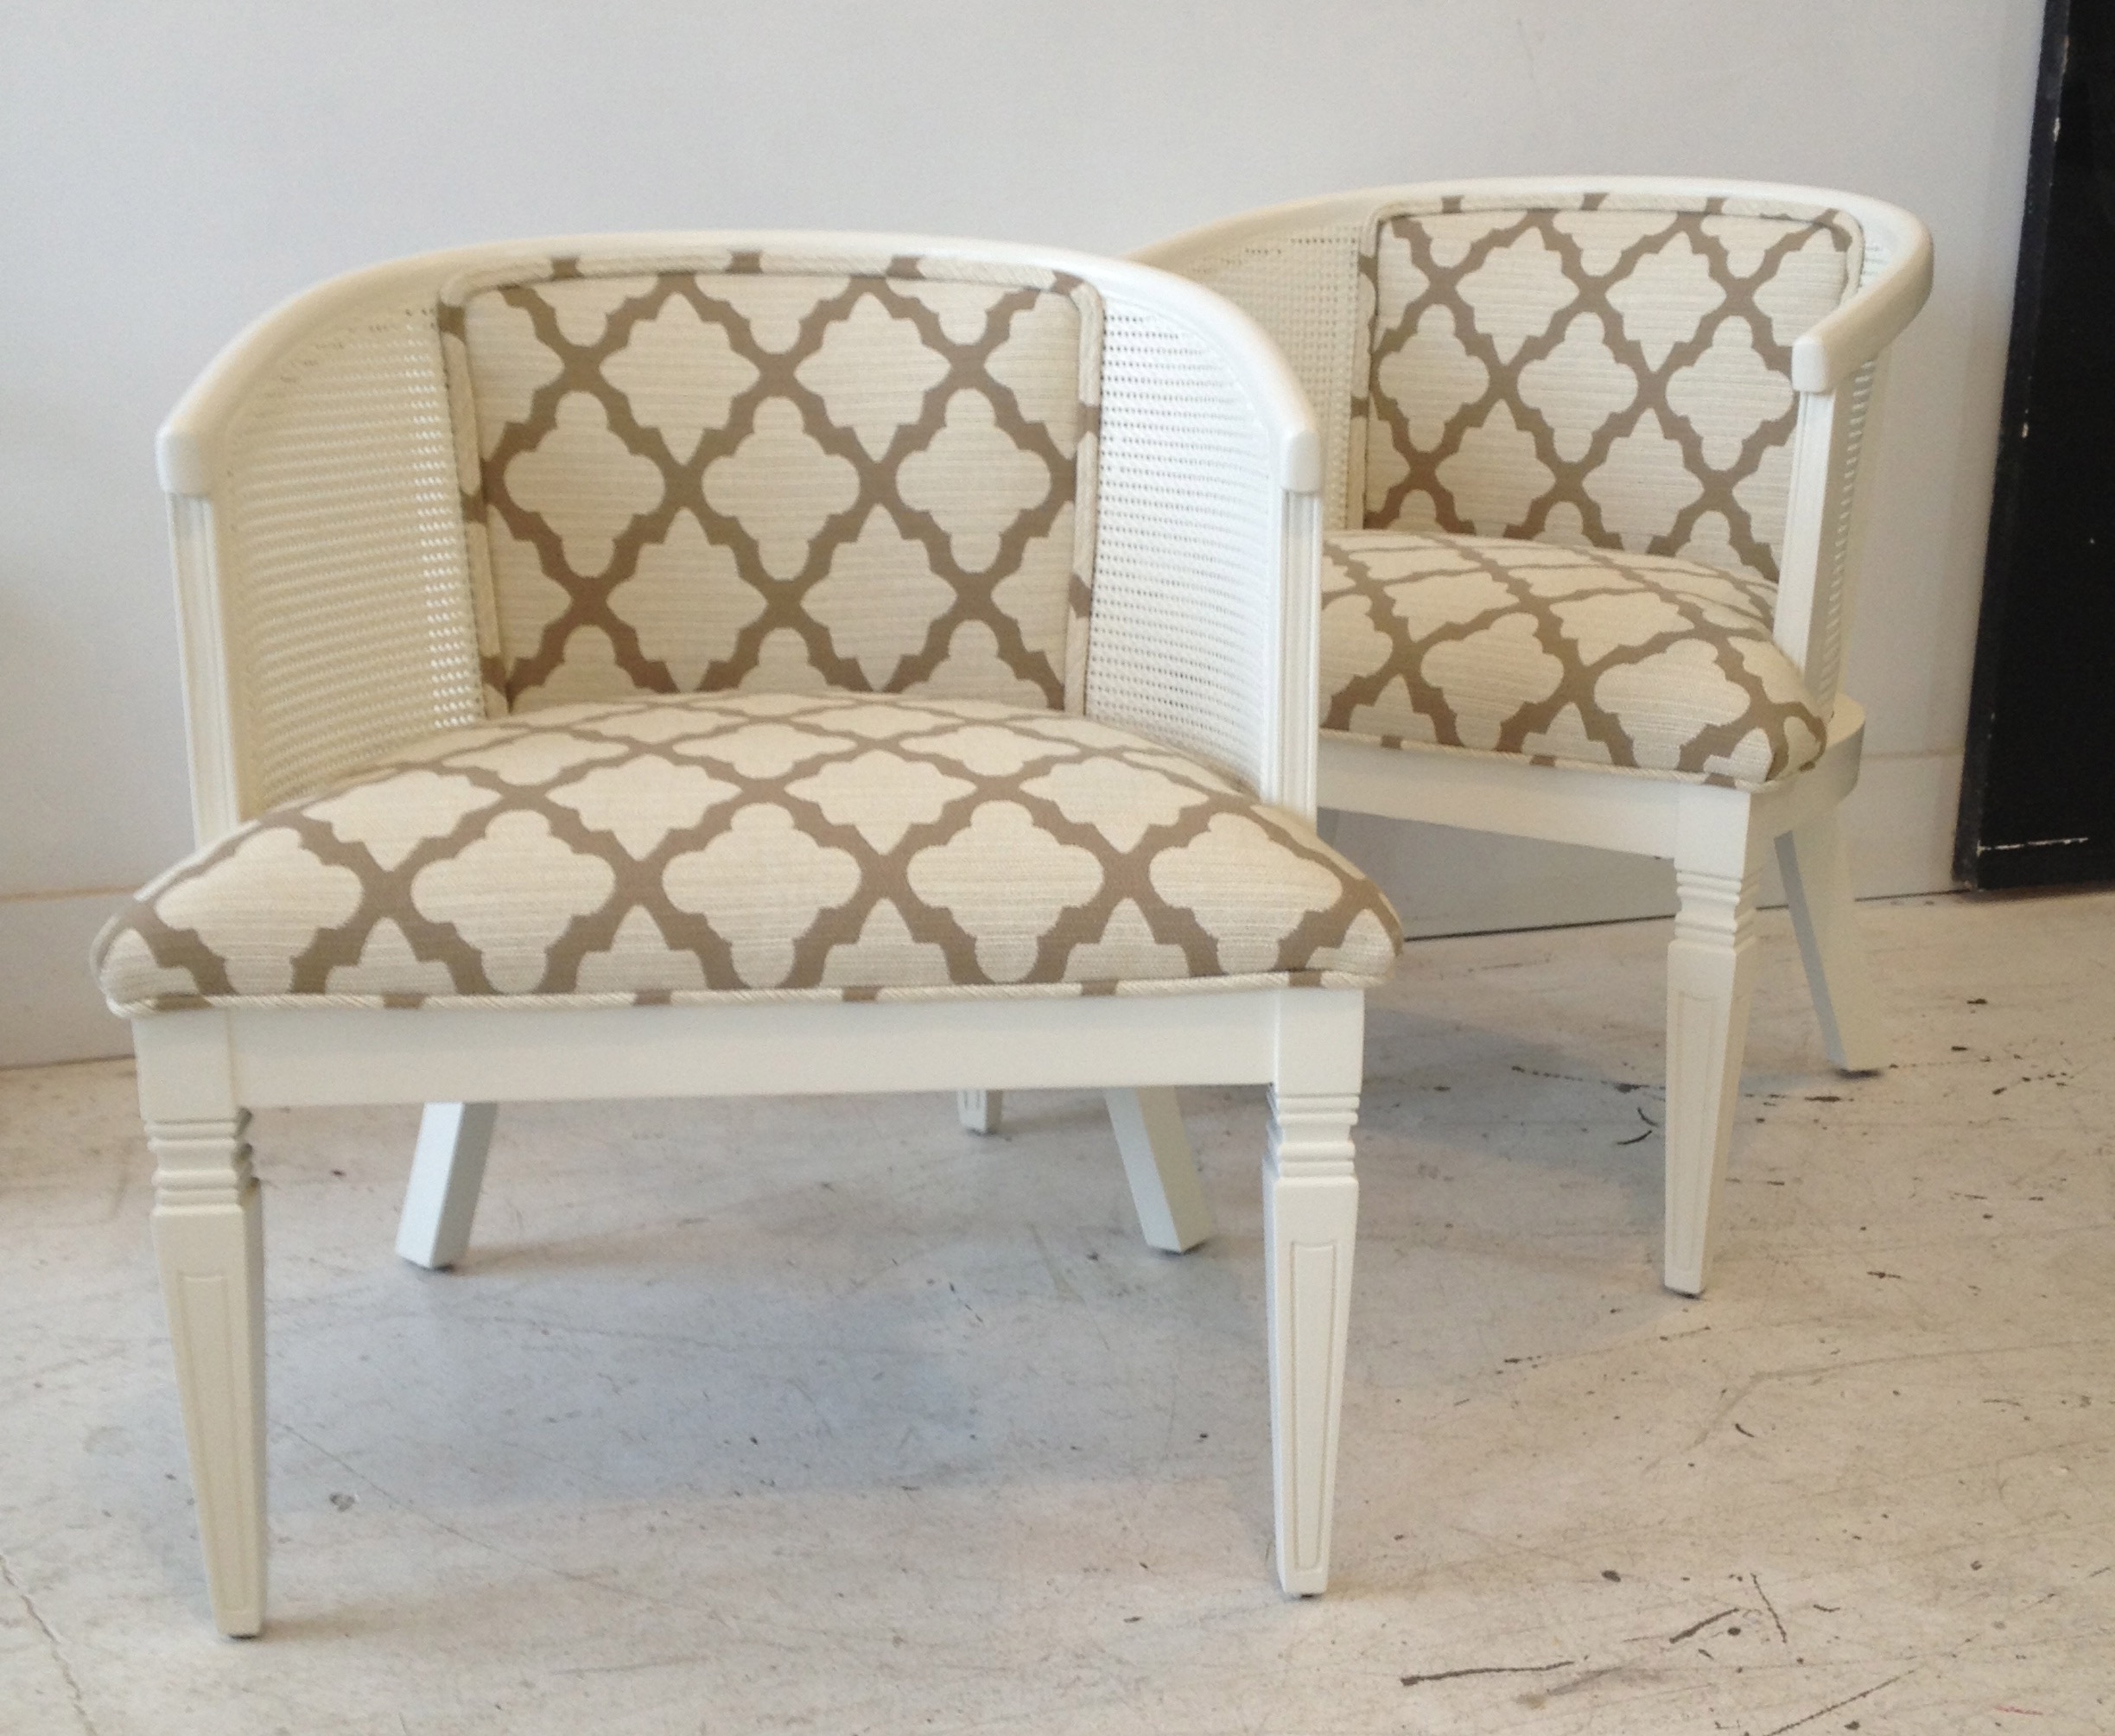 REUPHOLSTERY + PAINTING